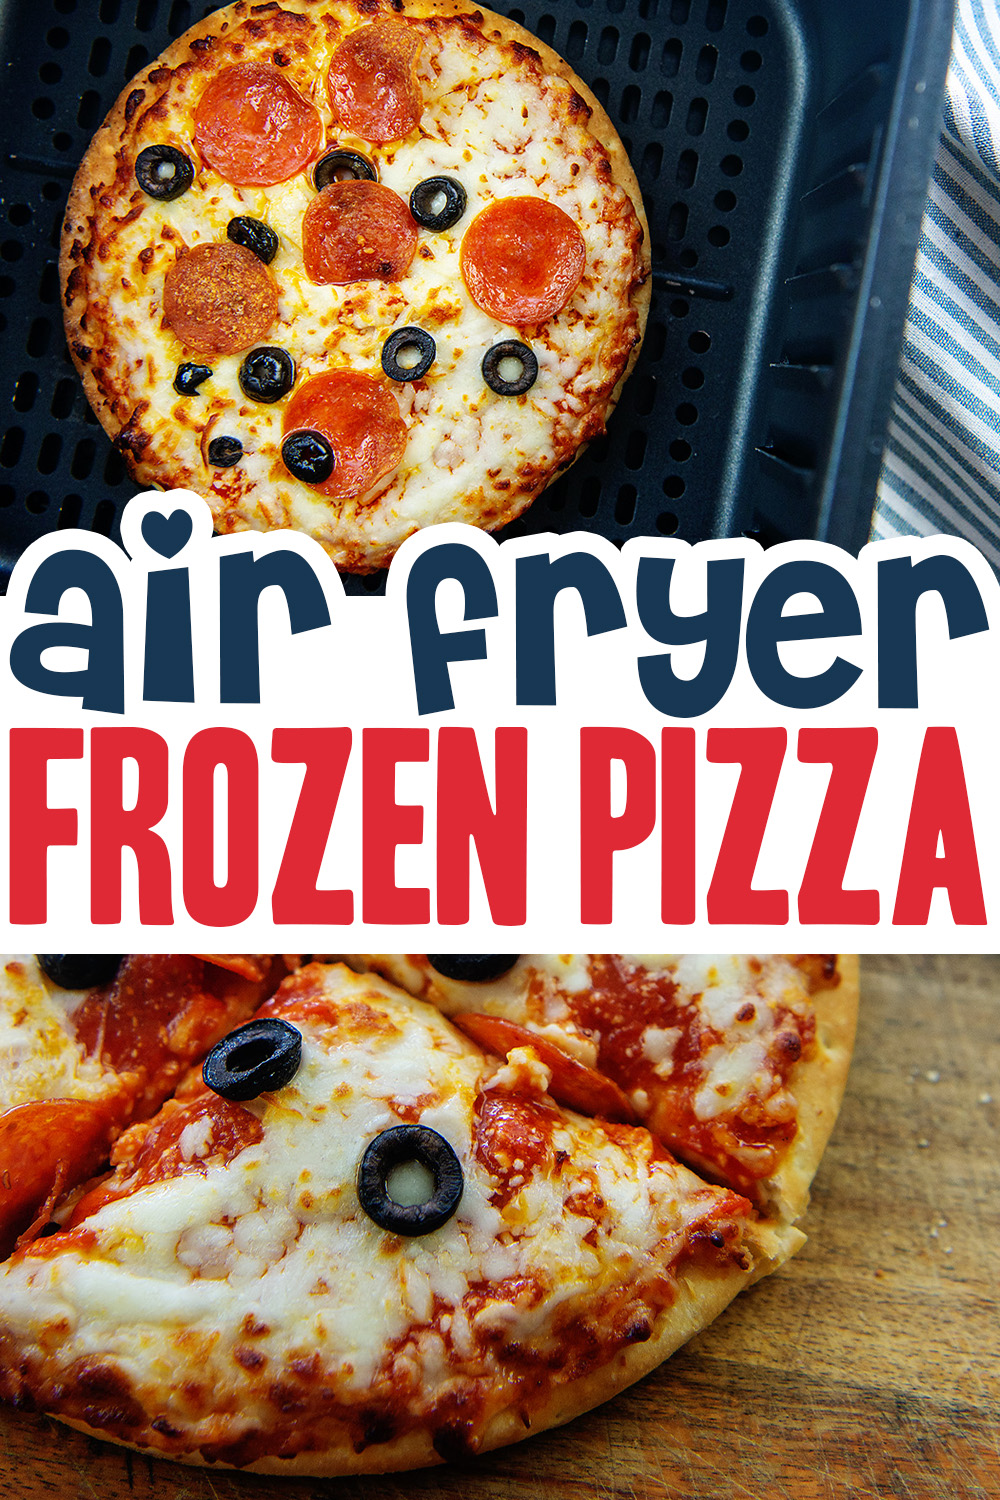 Check out the air fryer for making your personal pizzas!  It is more efficient and faster than using your oven.